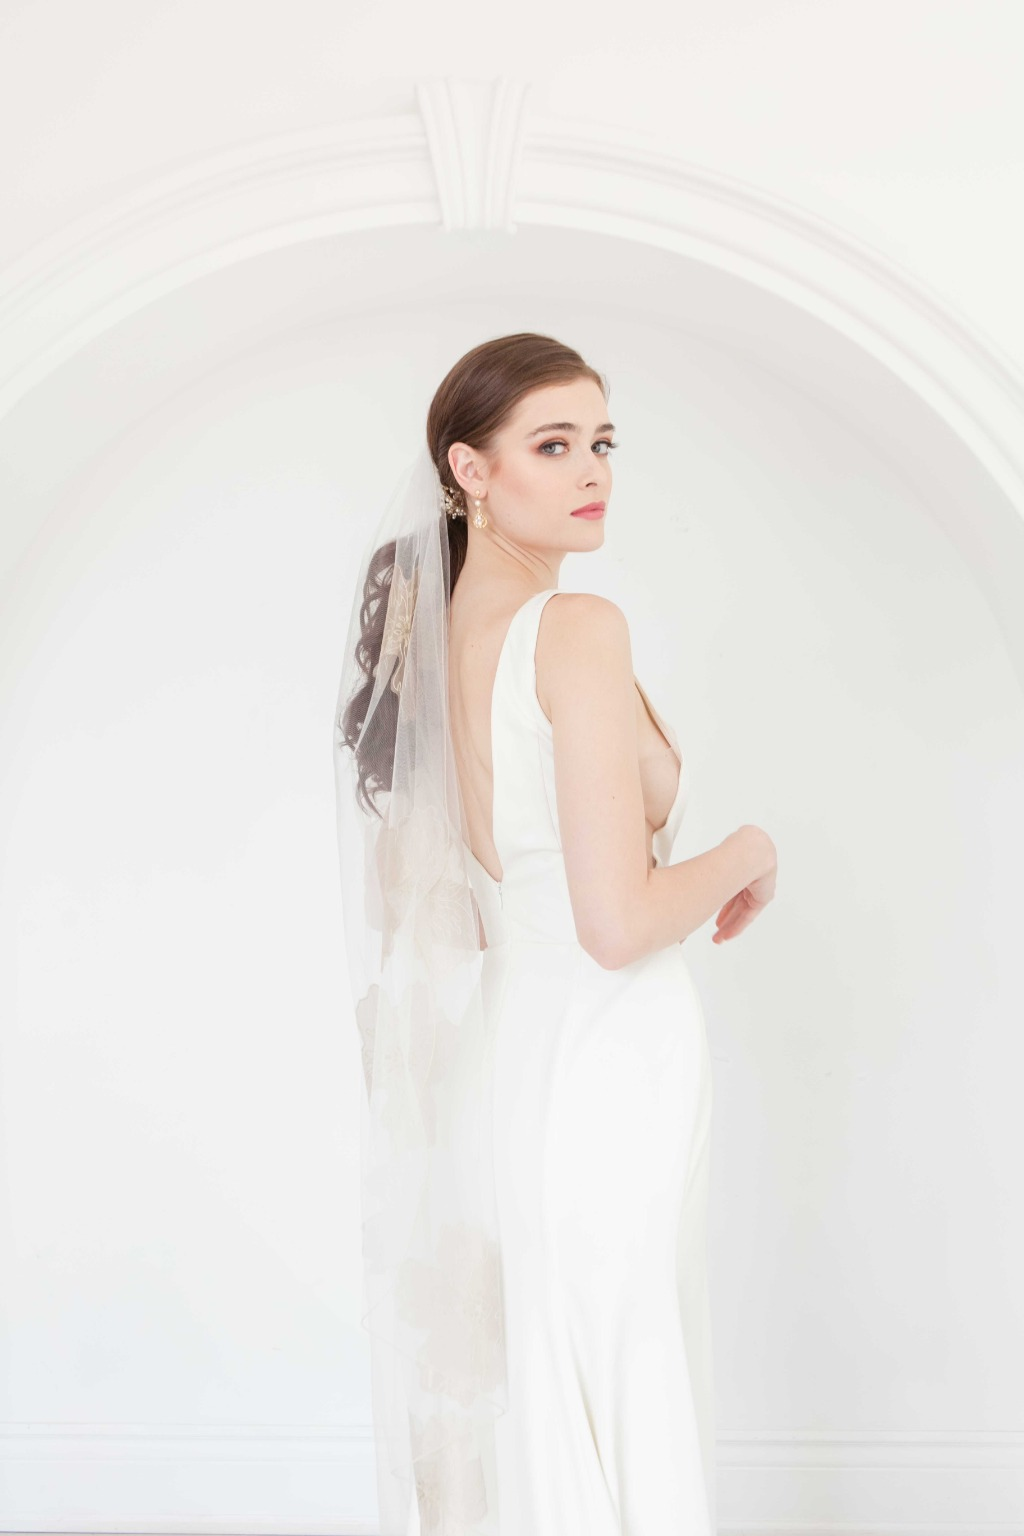 Explore more wedding inspirations from the 2020 collection!